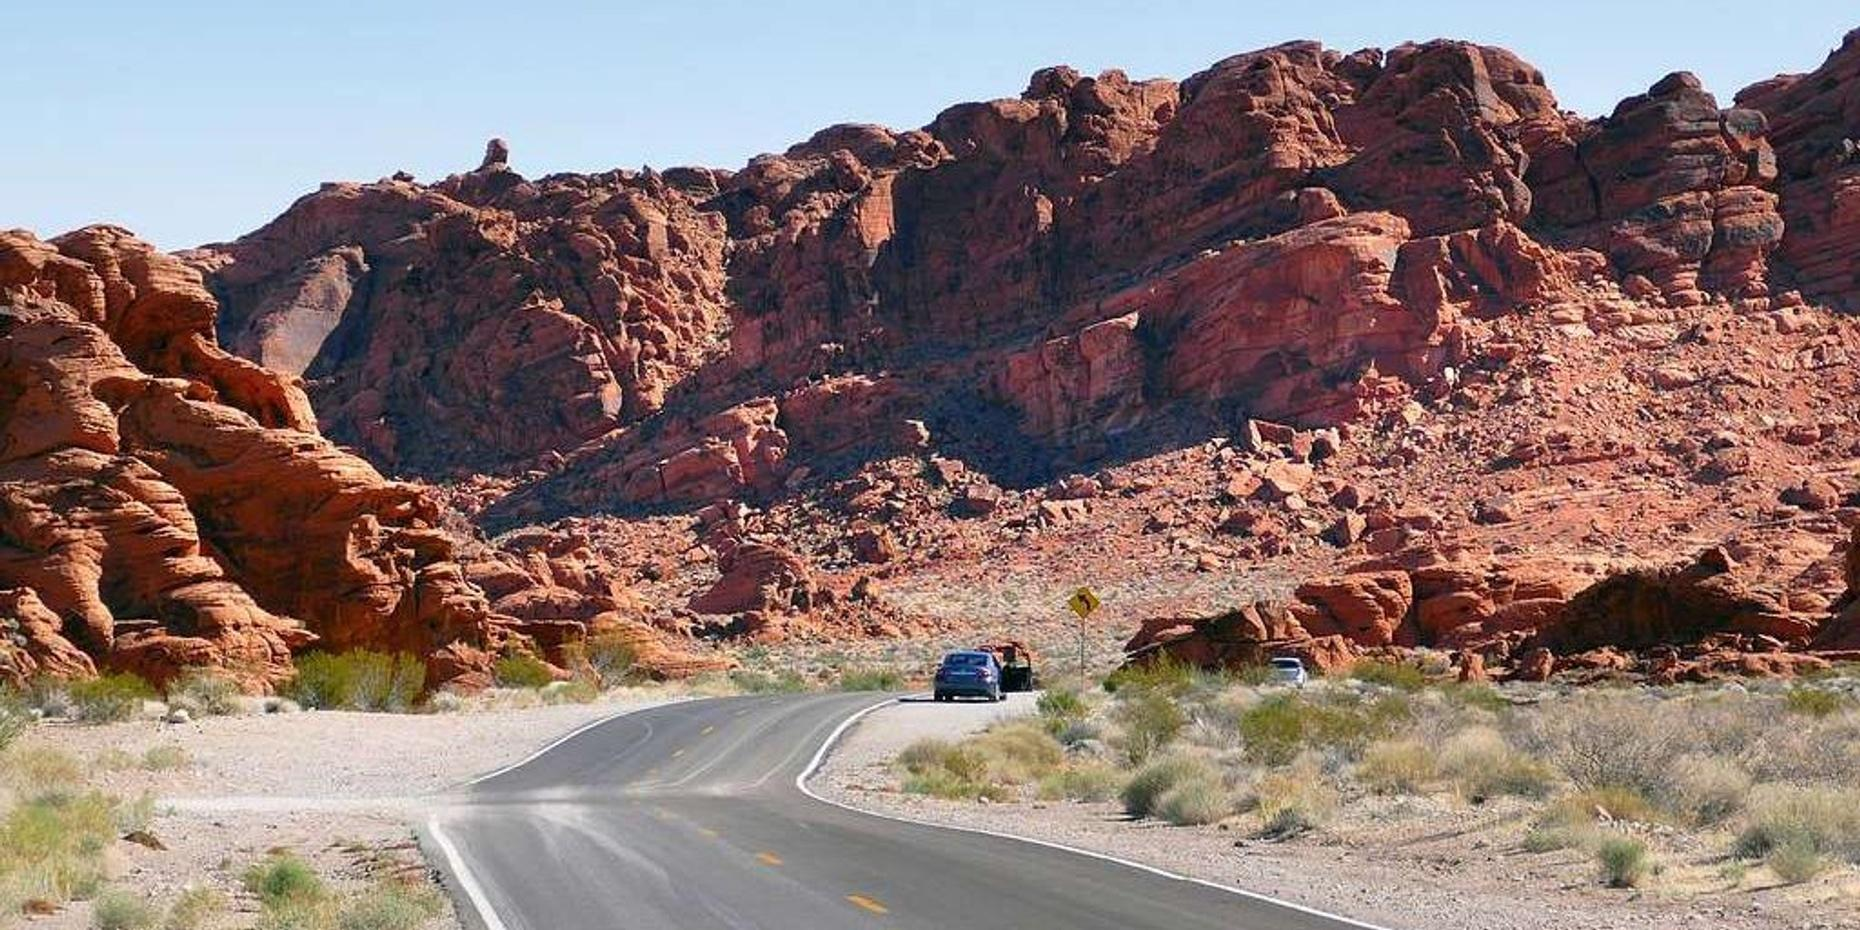 Valley of Fire State Park Tour in Nevada